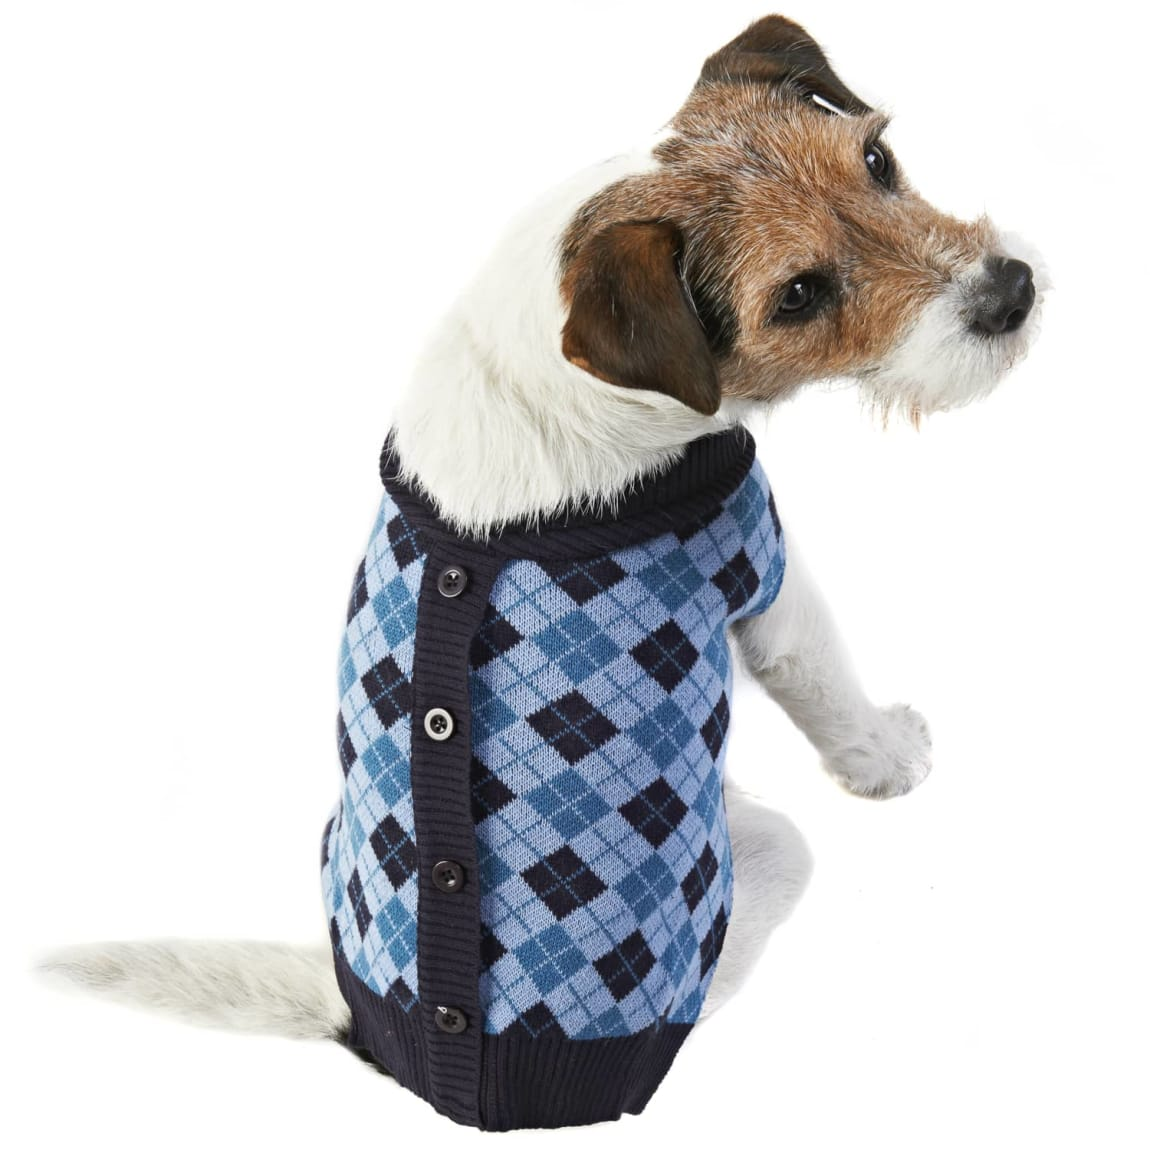 Doggy Cardigan - Small - Large - Blue